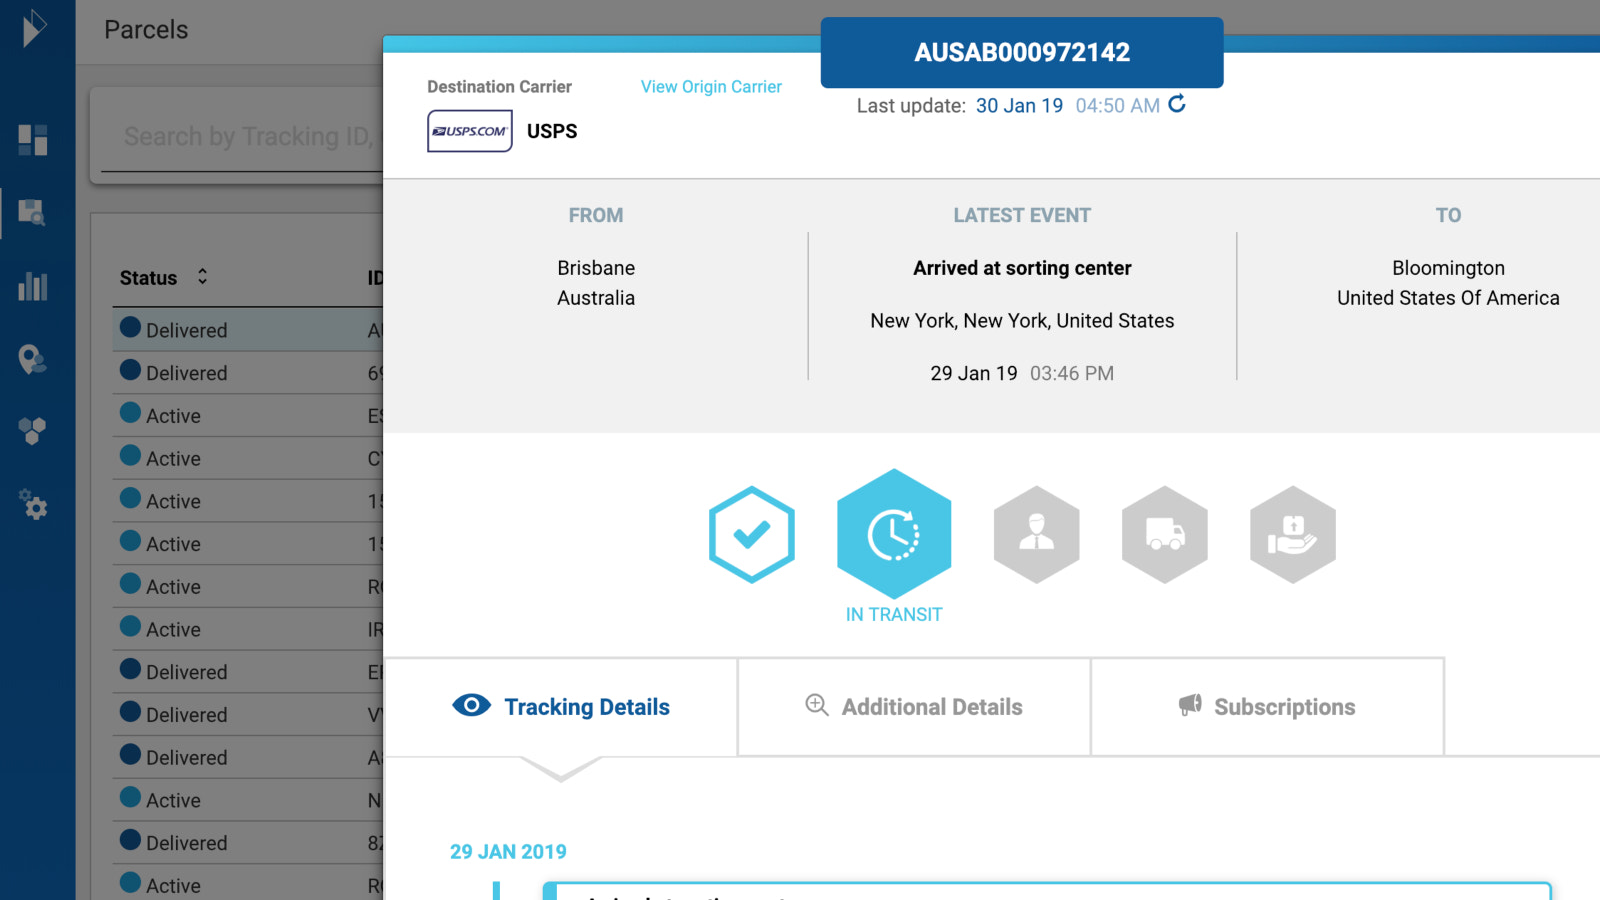 Parcel and order delivery details and track events in a customer